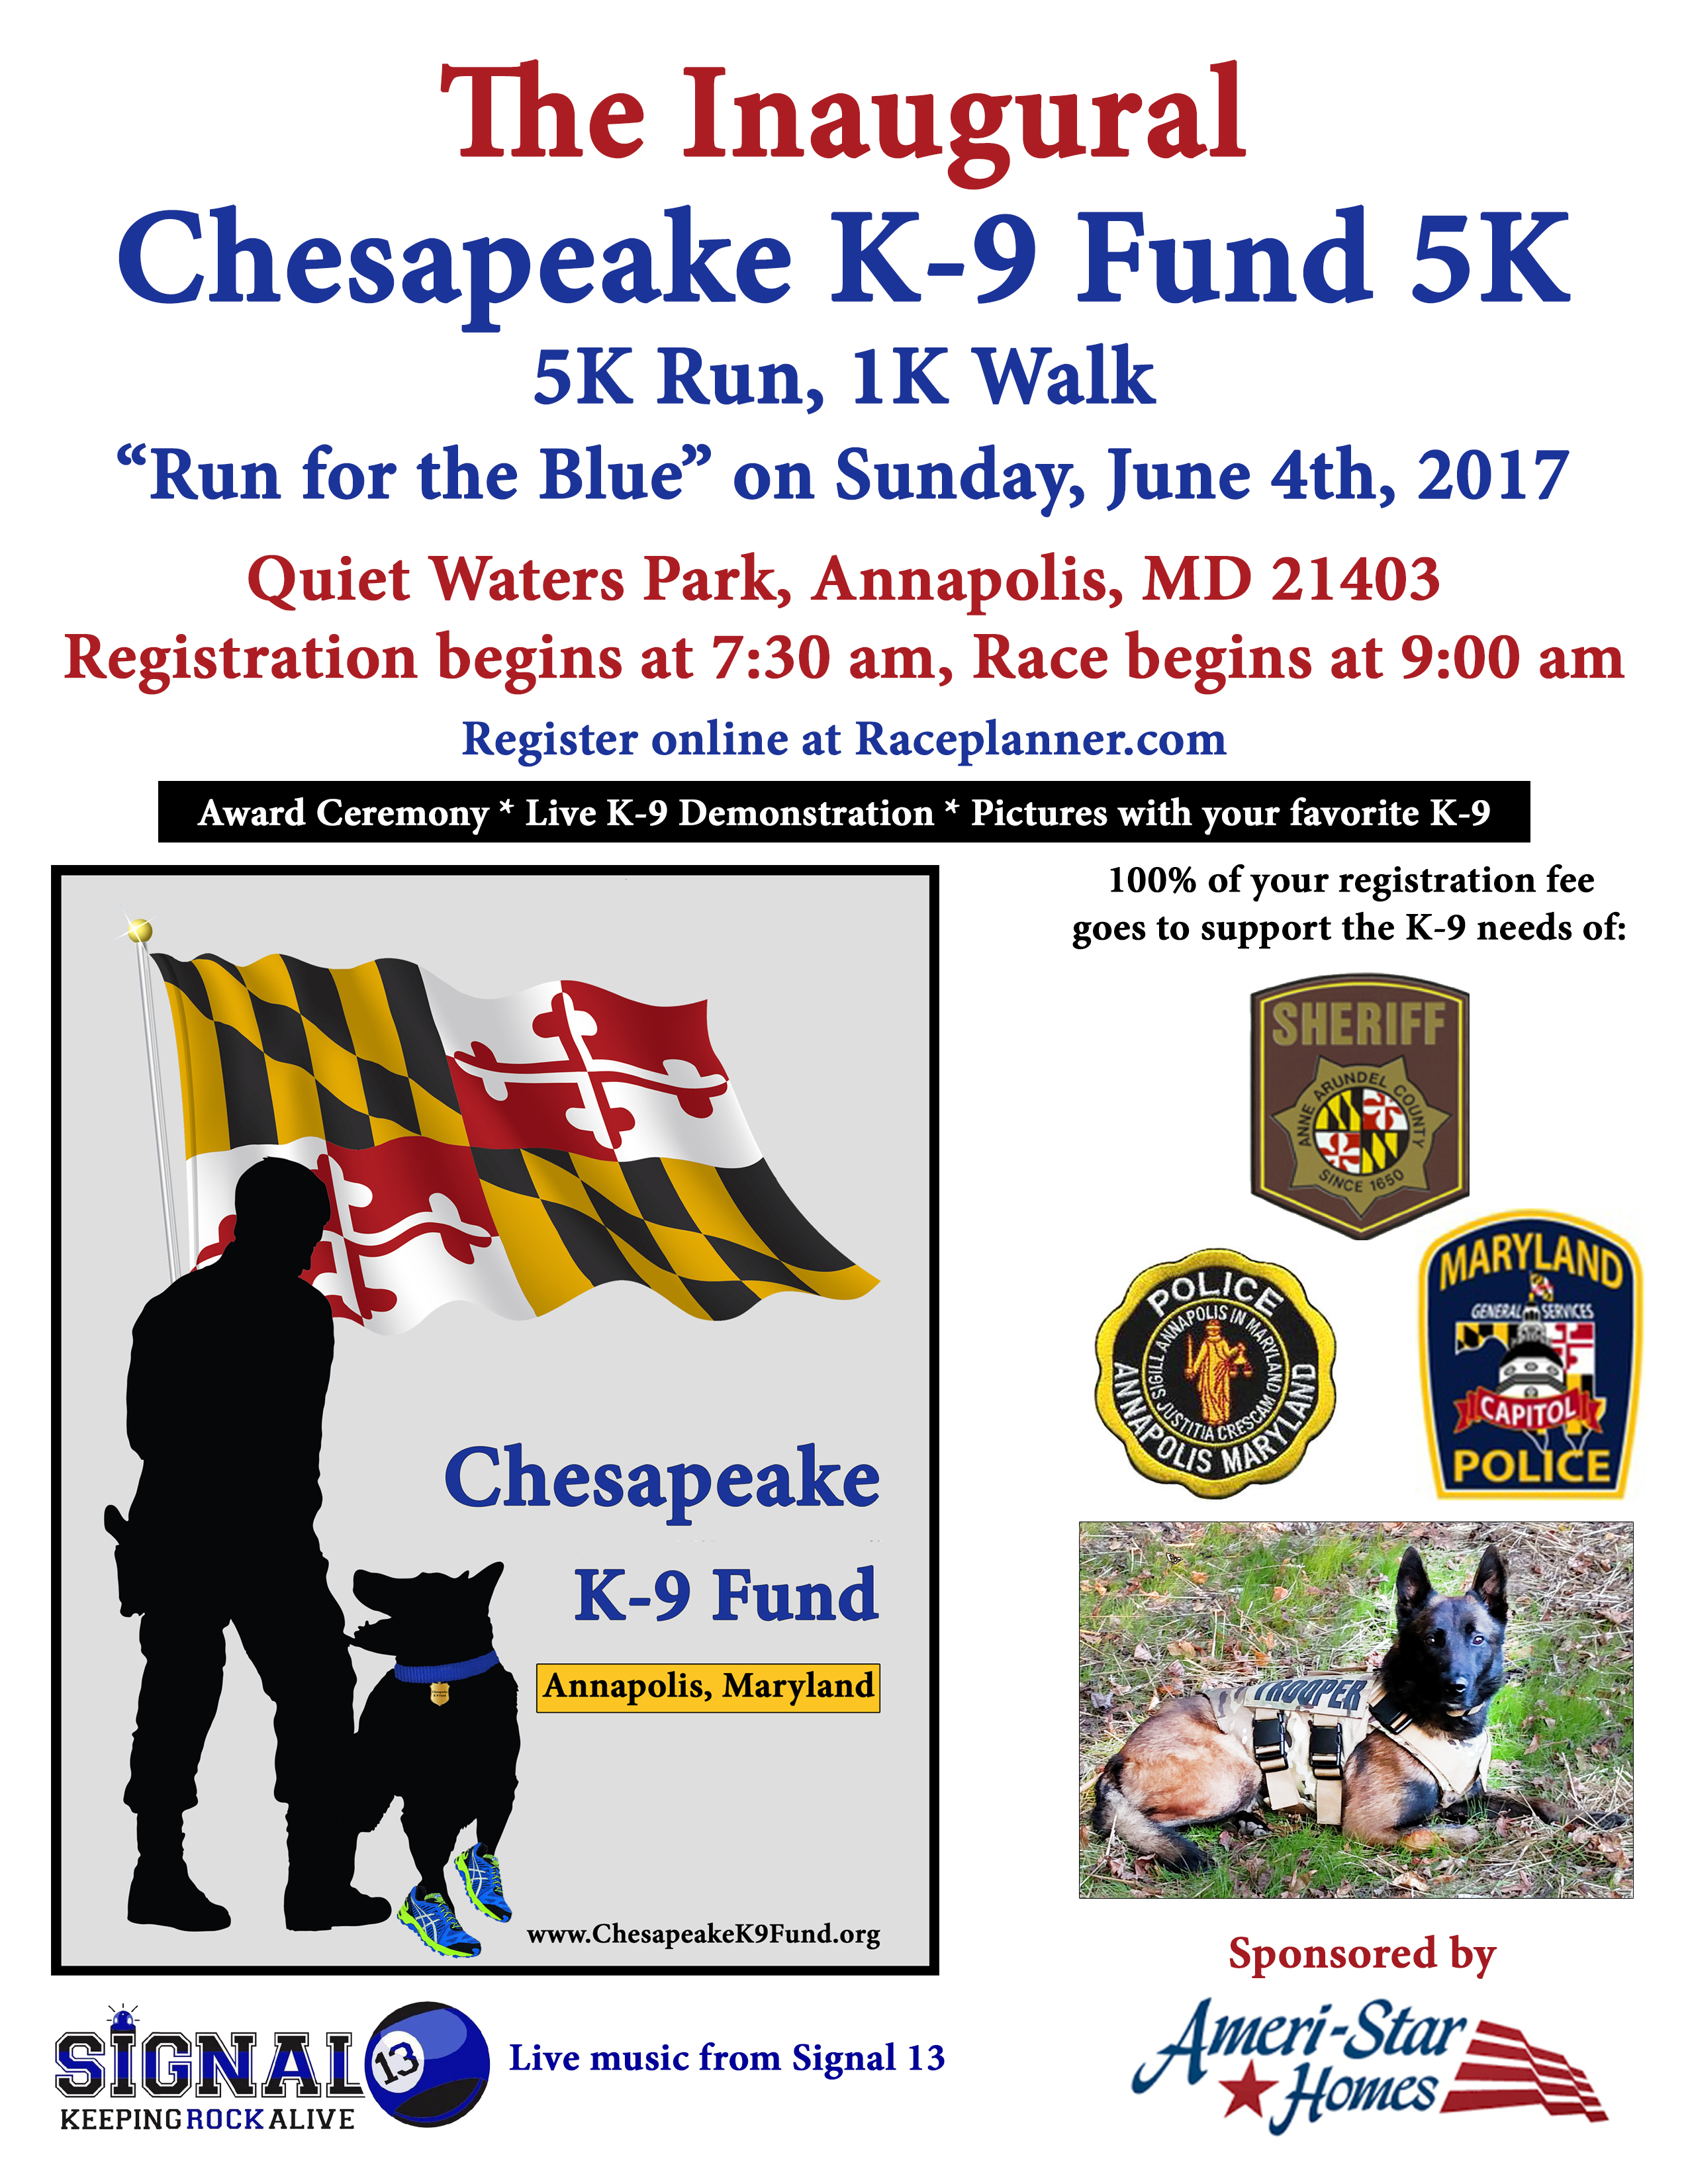 Chesapeake 20k9 20fund 205k 204 208 2017 20final